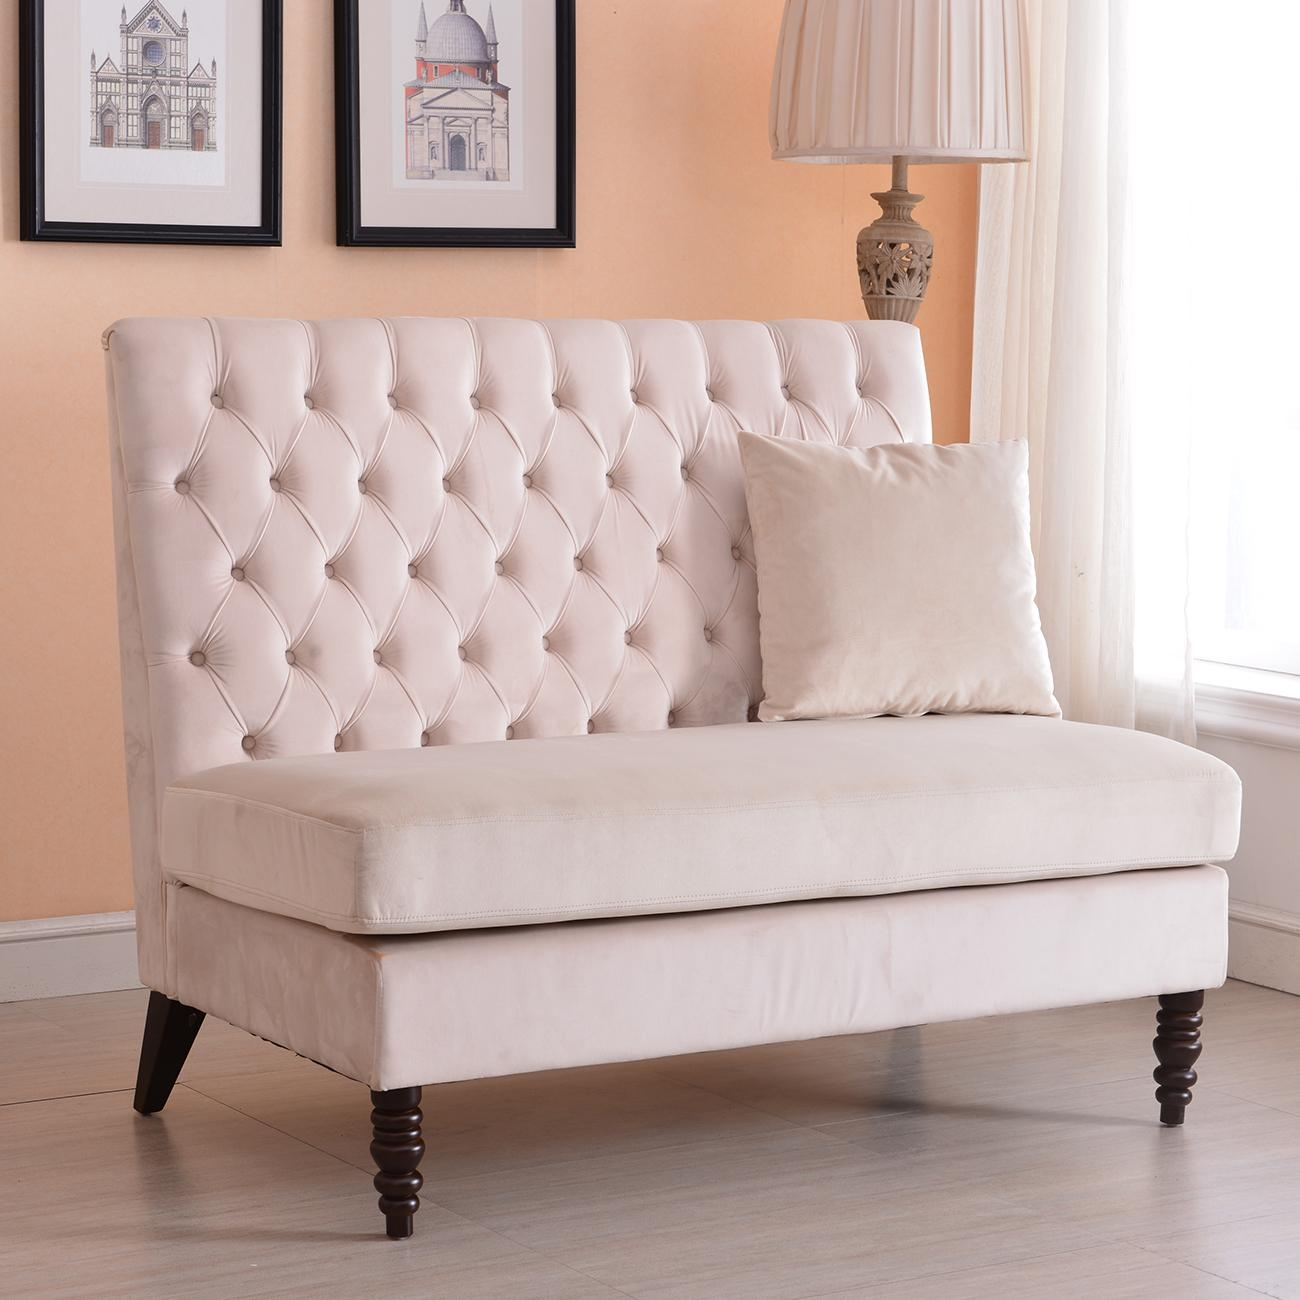 New Modern Tufted Settee Bedroom Bench Sofa High Back Cushion Seat Pertaining To Bench Cushion Sofas (Image 13 of 20)